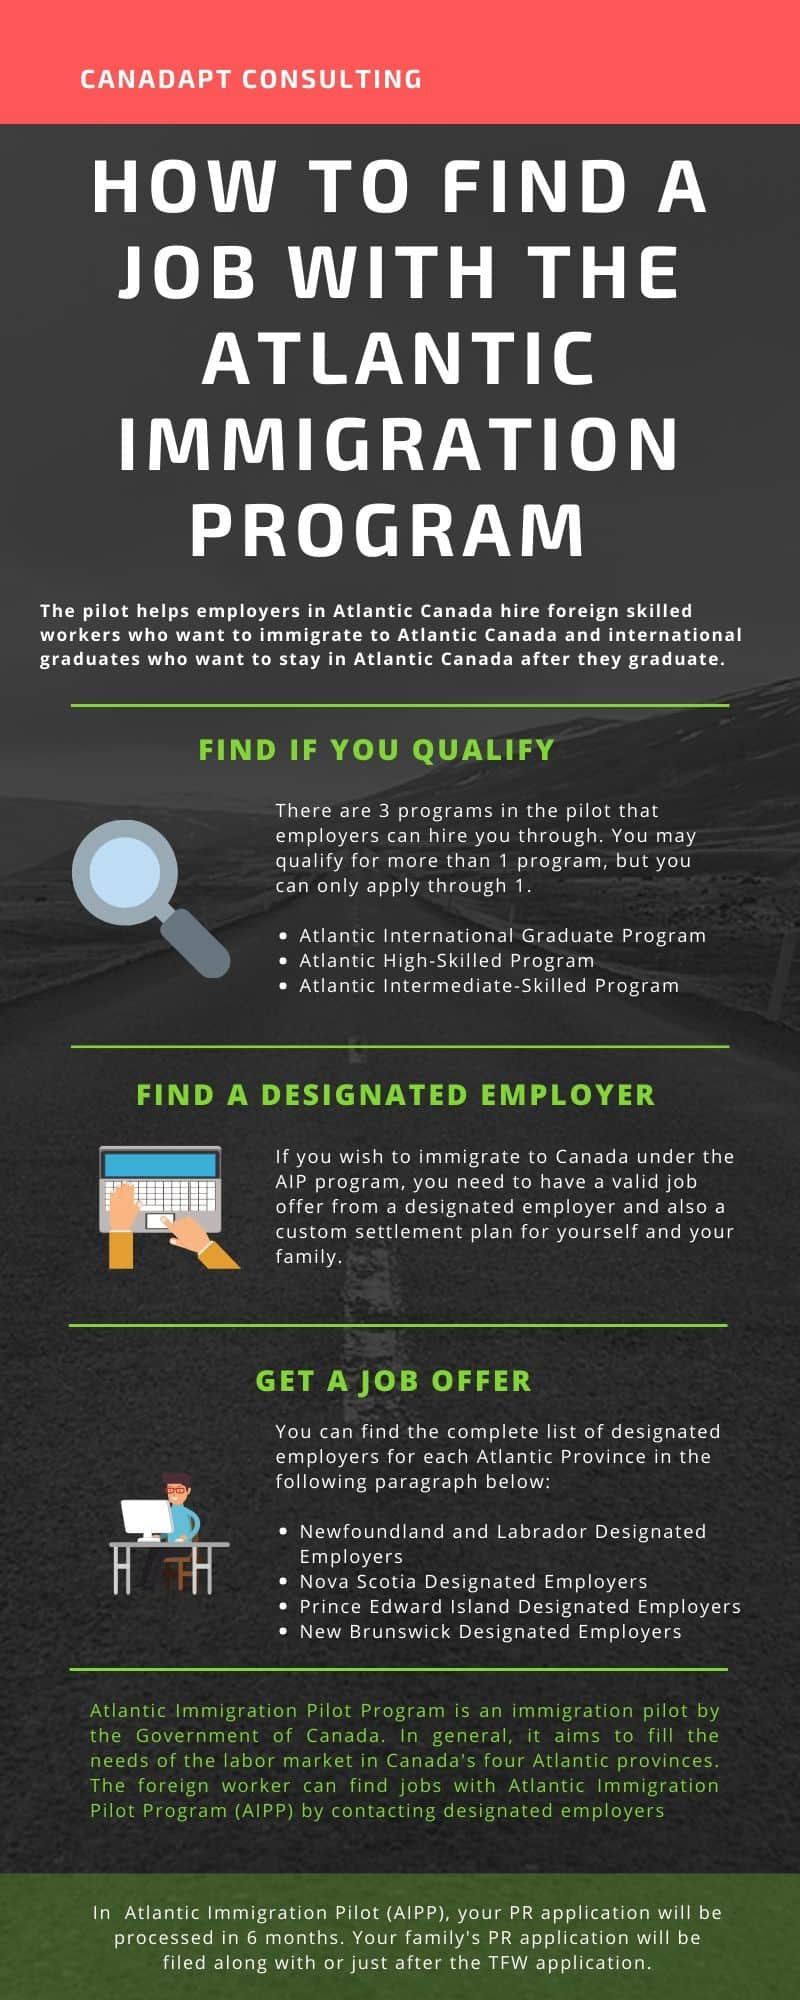 how to get job offer for aipp